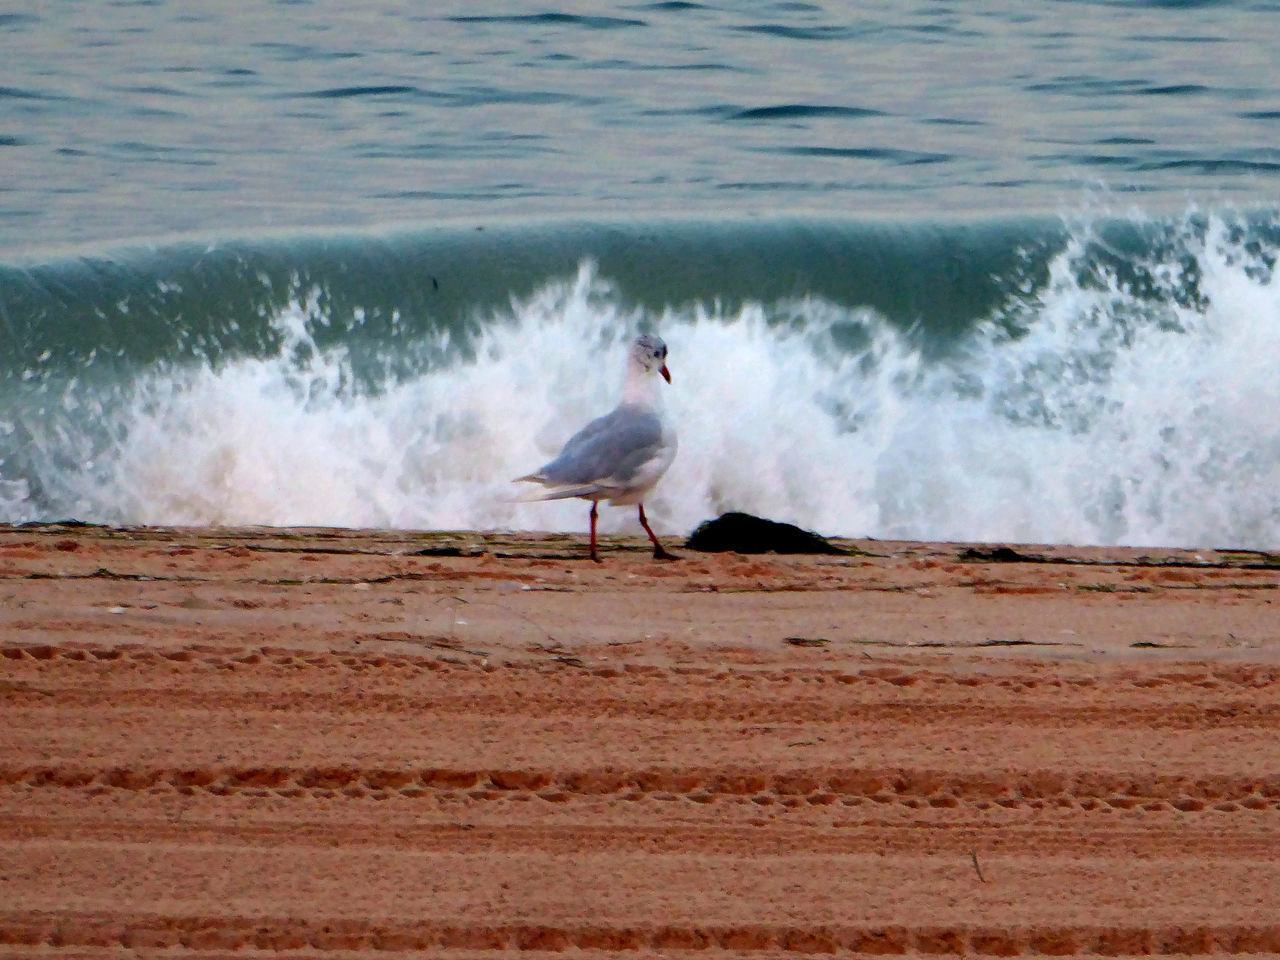 one animal, bird, nature, water, animal themes, animals in the wild, sea, day, wave, motion, beauty in nature, seagull, outdoors, no people, beach, perching